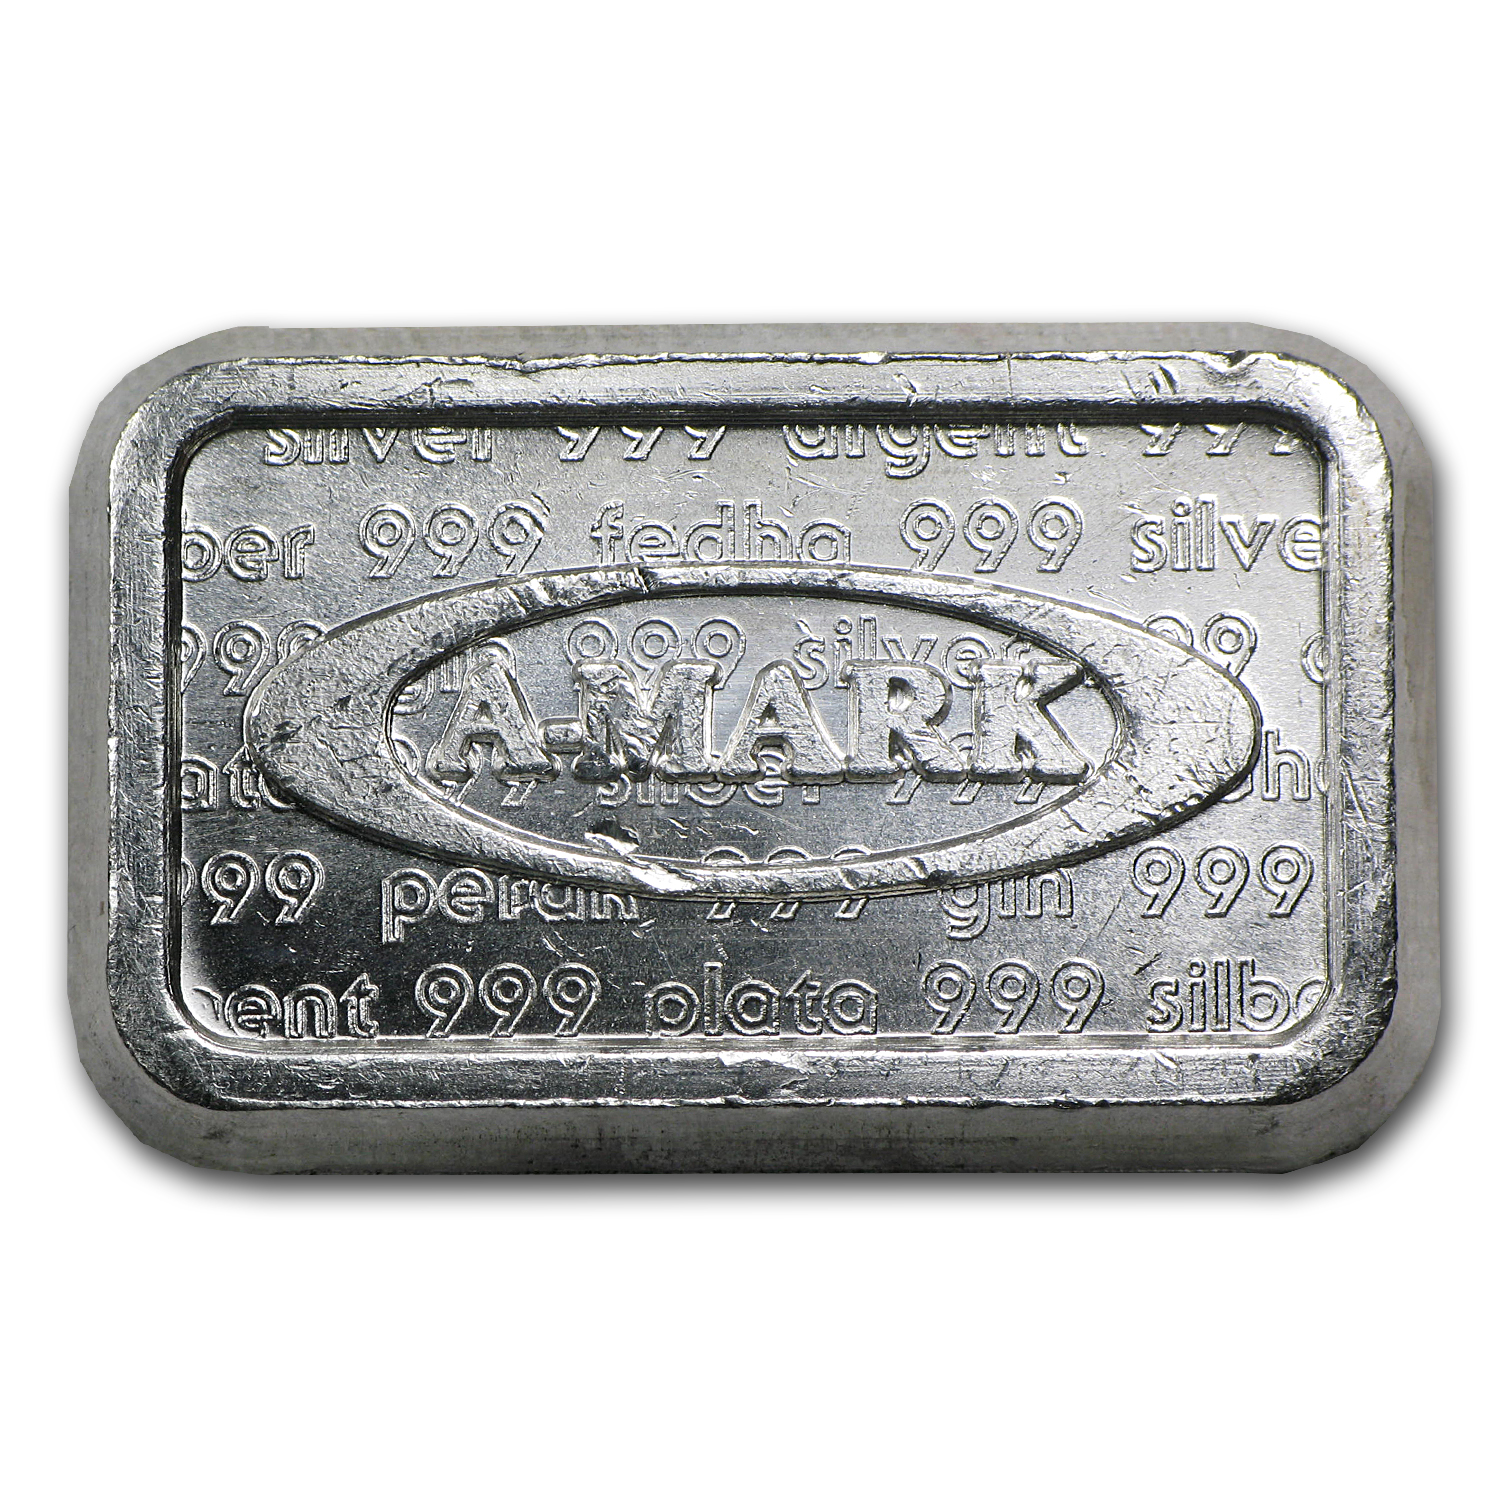 1 oz Silver Bar - A-Mark U.S.V.I. Ingot Co.